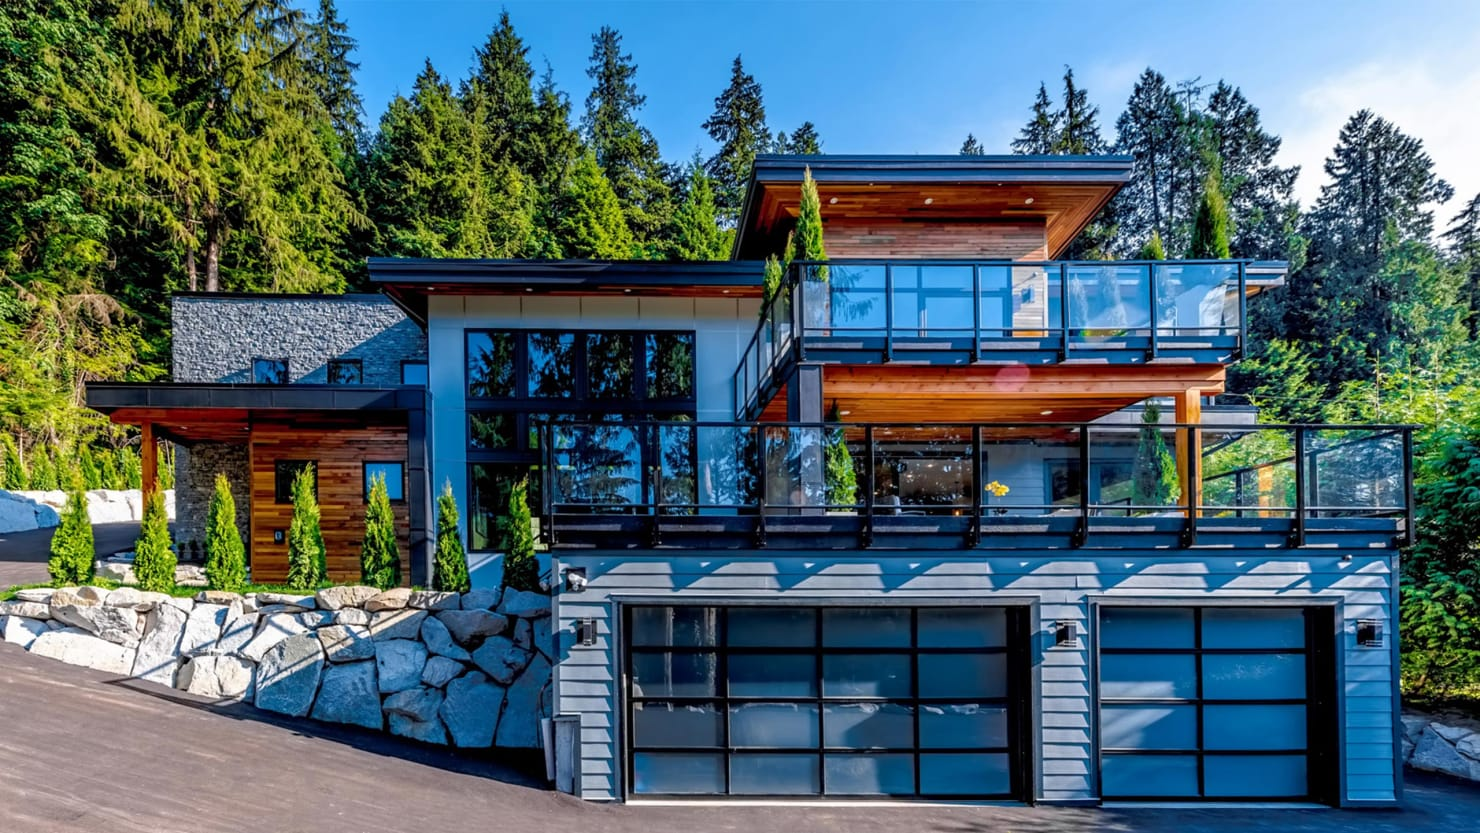 Wonderful 4000 Sq Ft Canadian Home - 171202-mcnearney-omg-i-want-this-hous-canada-hero_gyivww  Graphic_998952.0/c_limit,w_740/fl_lossy,q_auto/v1512232798/171202-mcnearney-omg-i-want-this-hous-canada-hero_gyivww